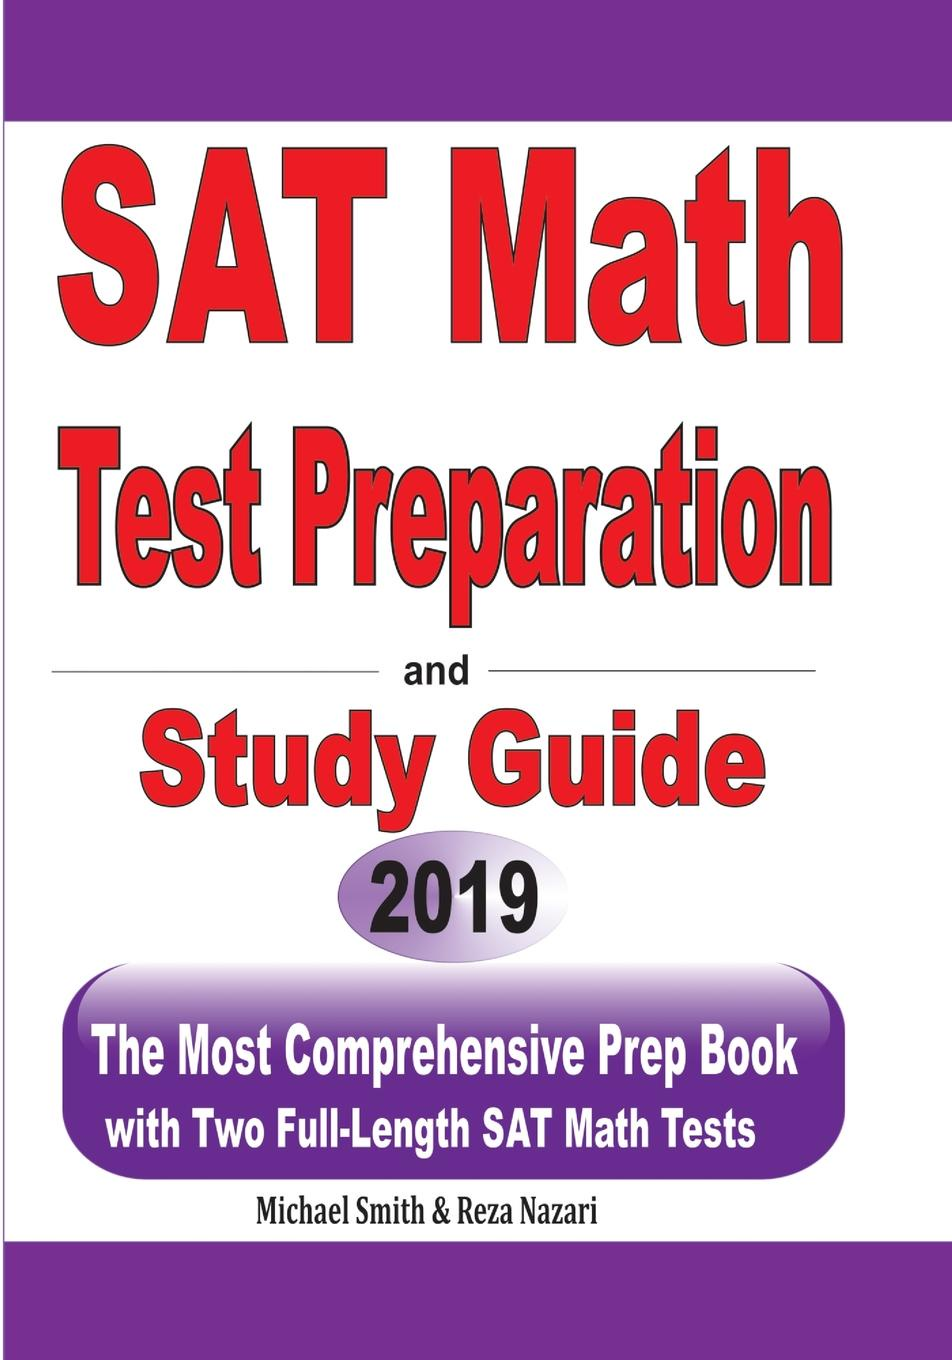 Michael Smith, Reza Nazari SAT Math Test Preparation and study guide. The Most Comprehensive Prep Book with Two Full-Length SAT Math Tests